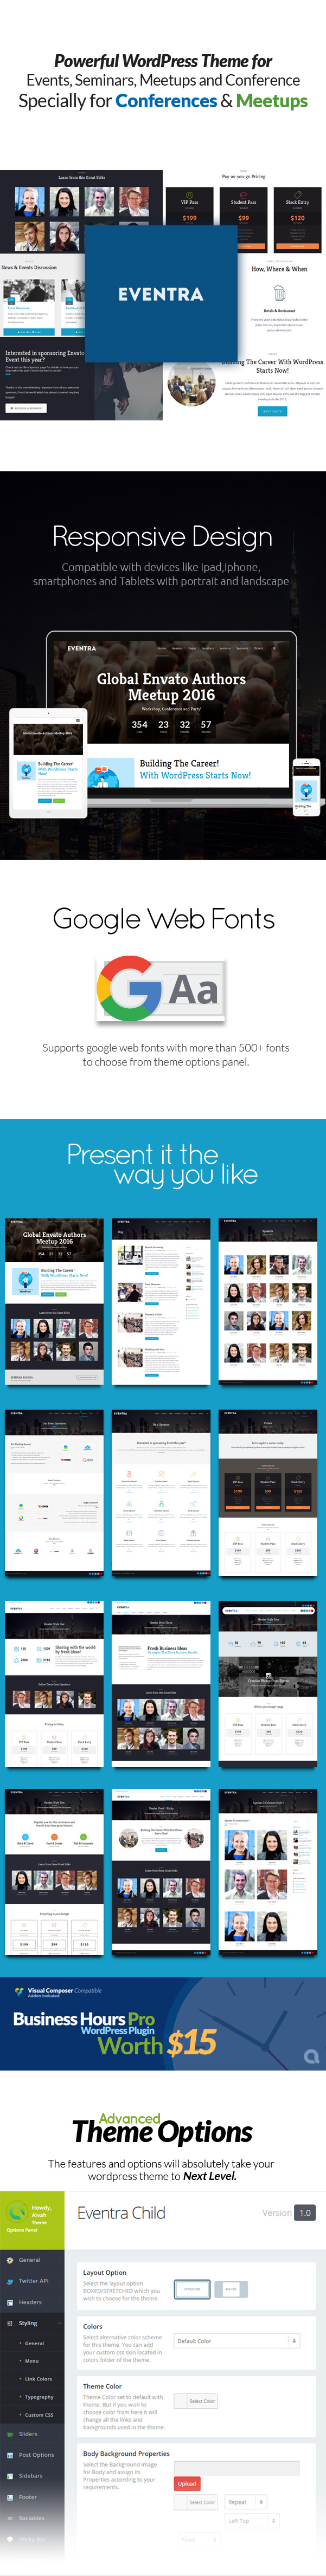 Eventra - Seminar, Meetups & Conferences WordPress Theme - 5